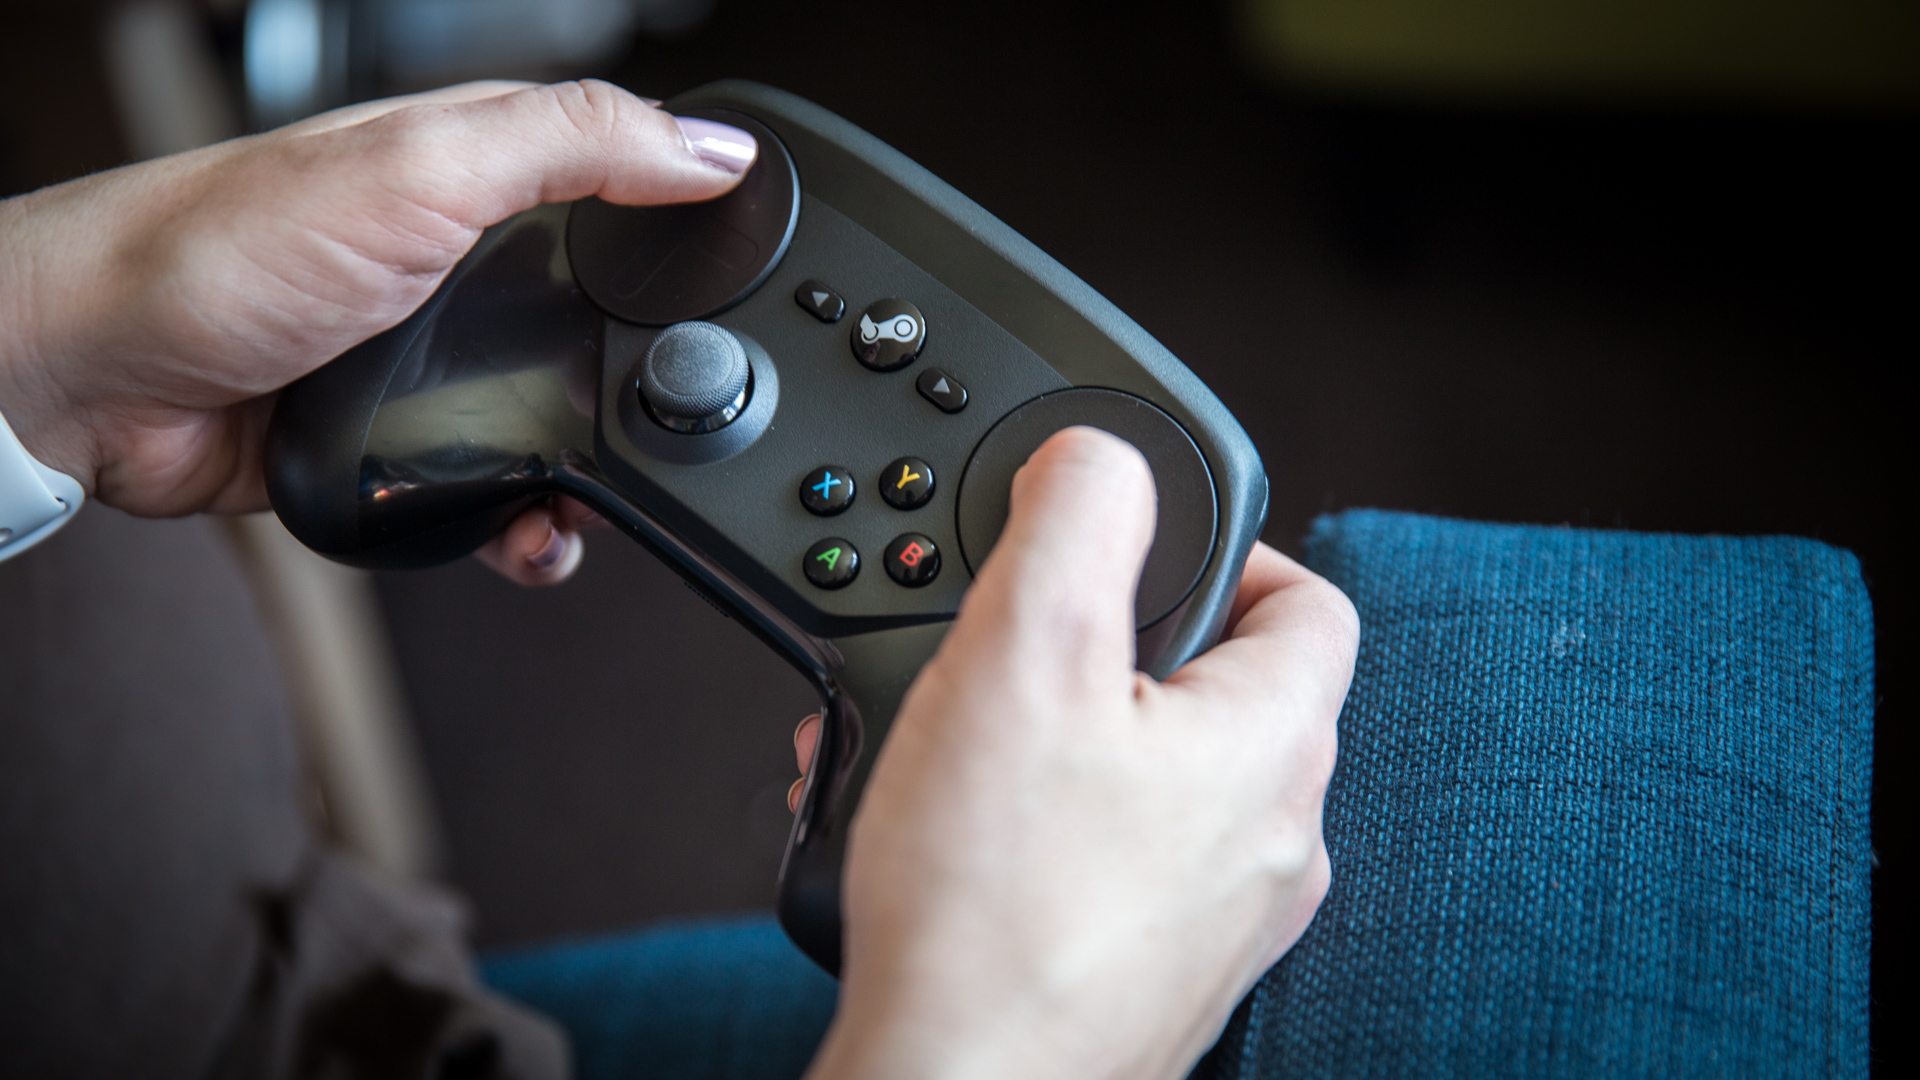 Valve could be working on a new Steam Controller